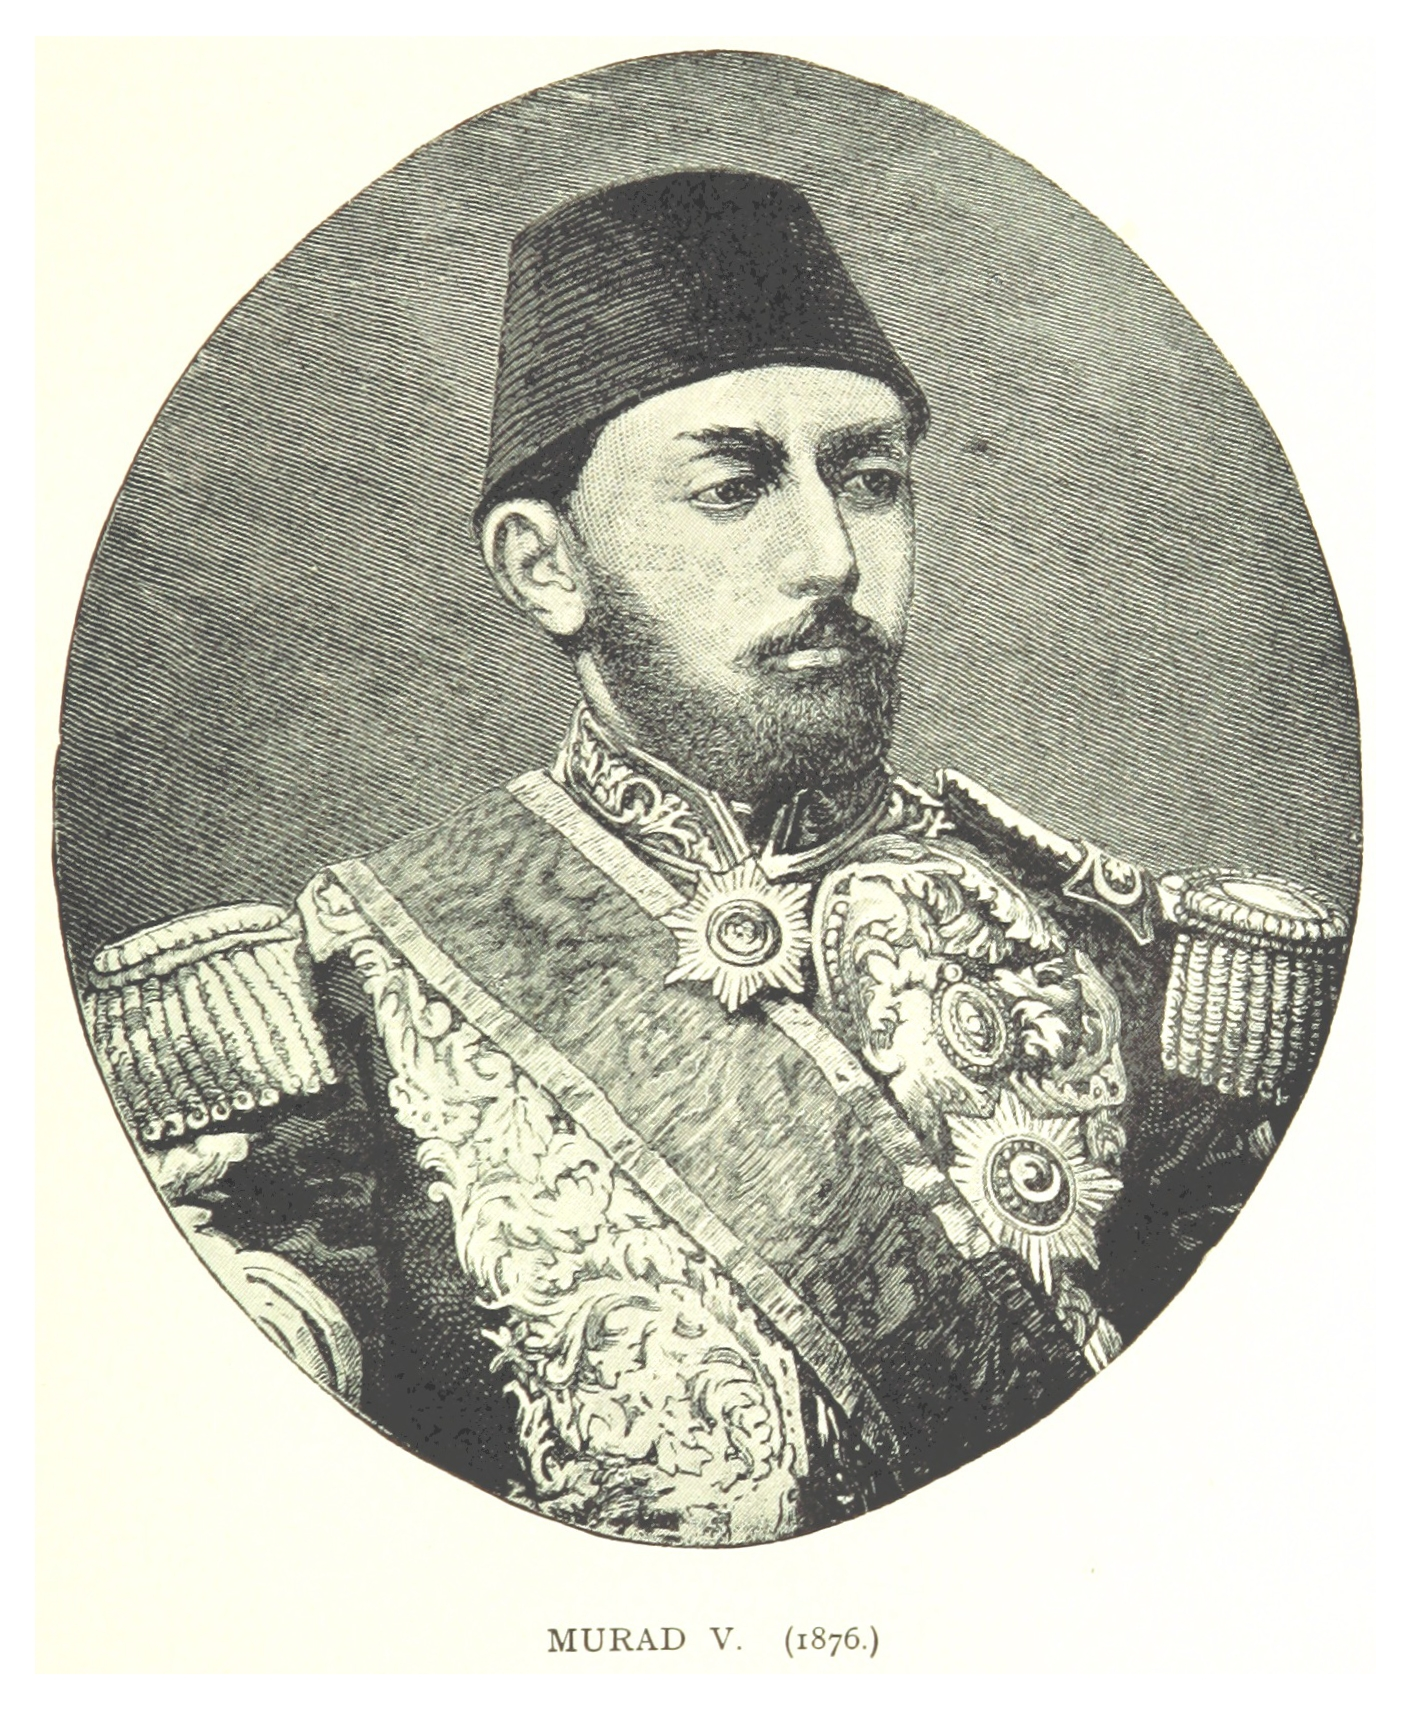 Sultan Murad V Pictures | Getty Images